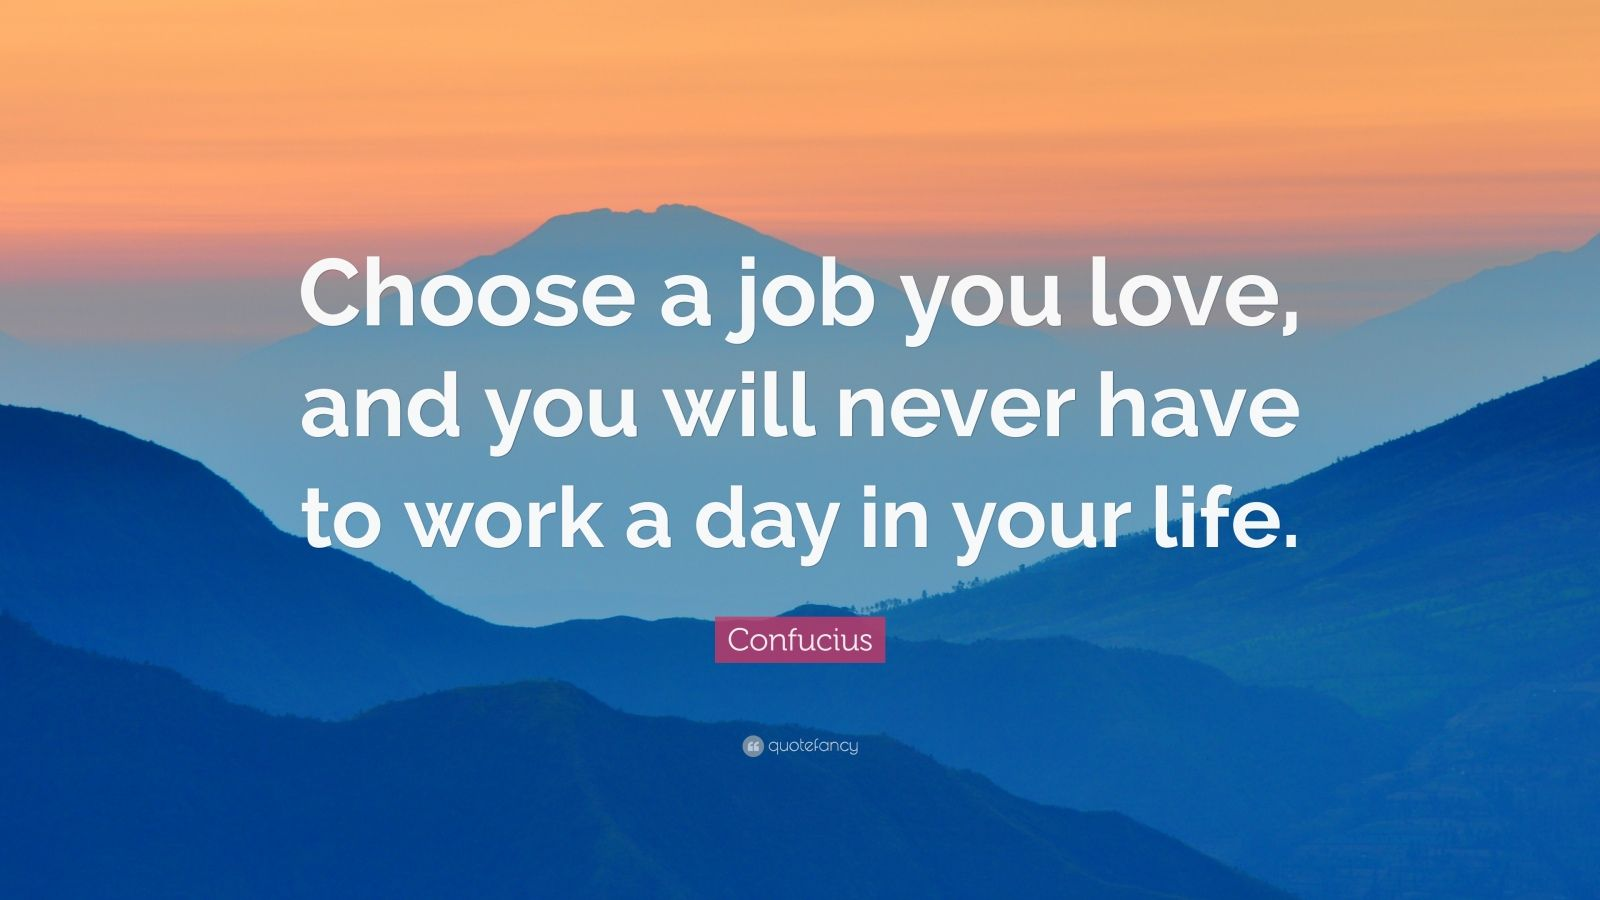 "choose a job you love and ""choose a job you love, and you will never have to work a day in your life"" quoted from confucius how fortunate for someone to be so lucky."